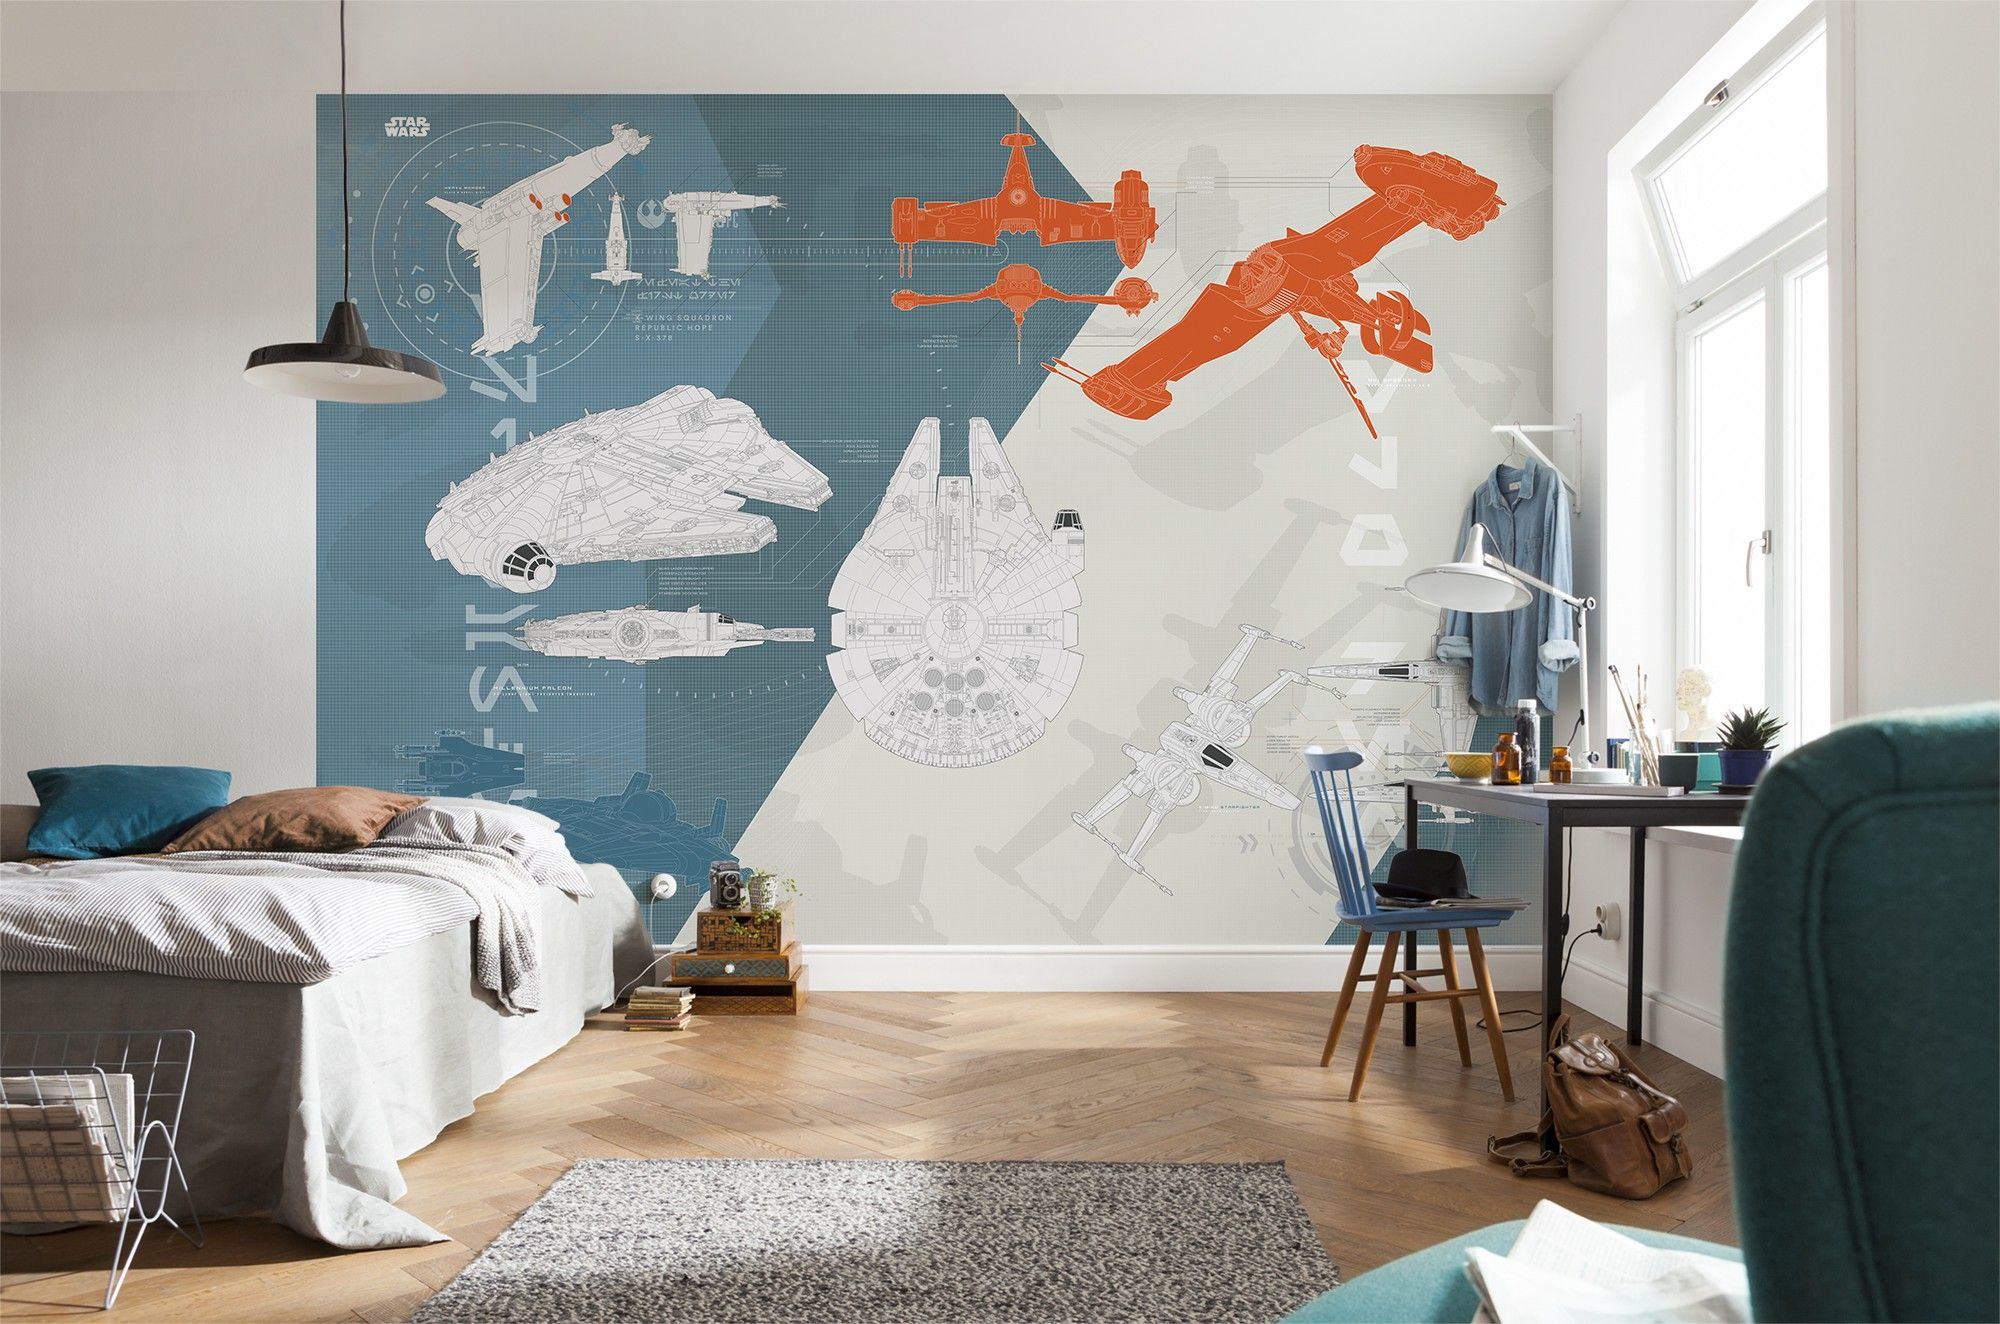 STAR WARS Technical Plan wall mural wallpaper Buy it now